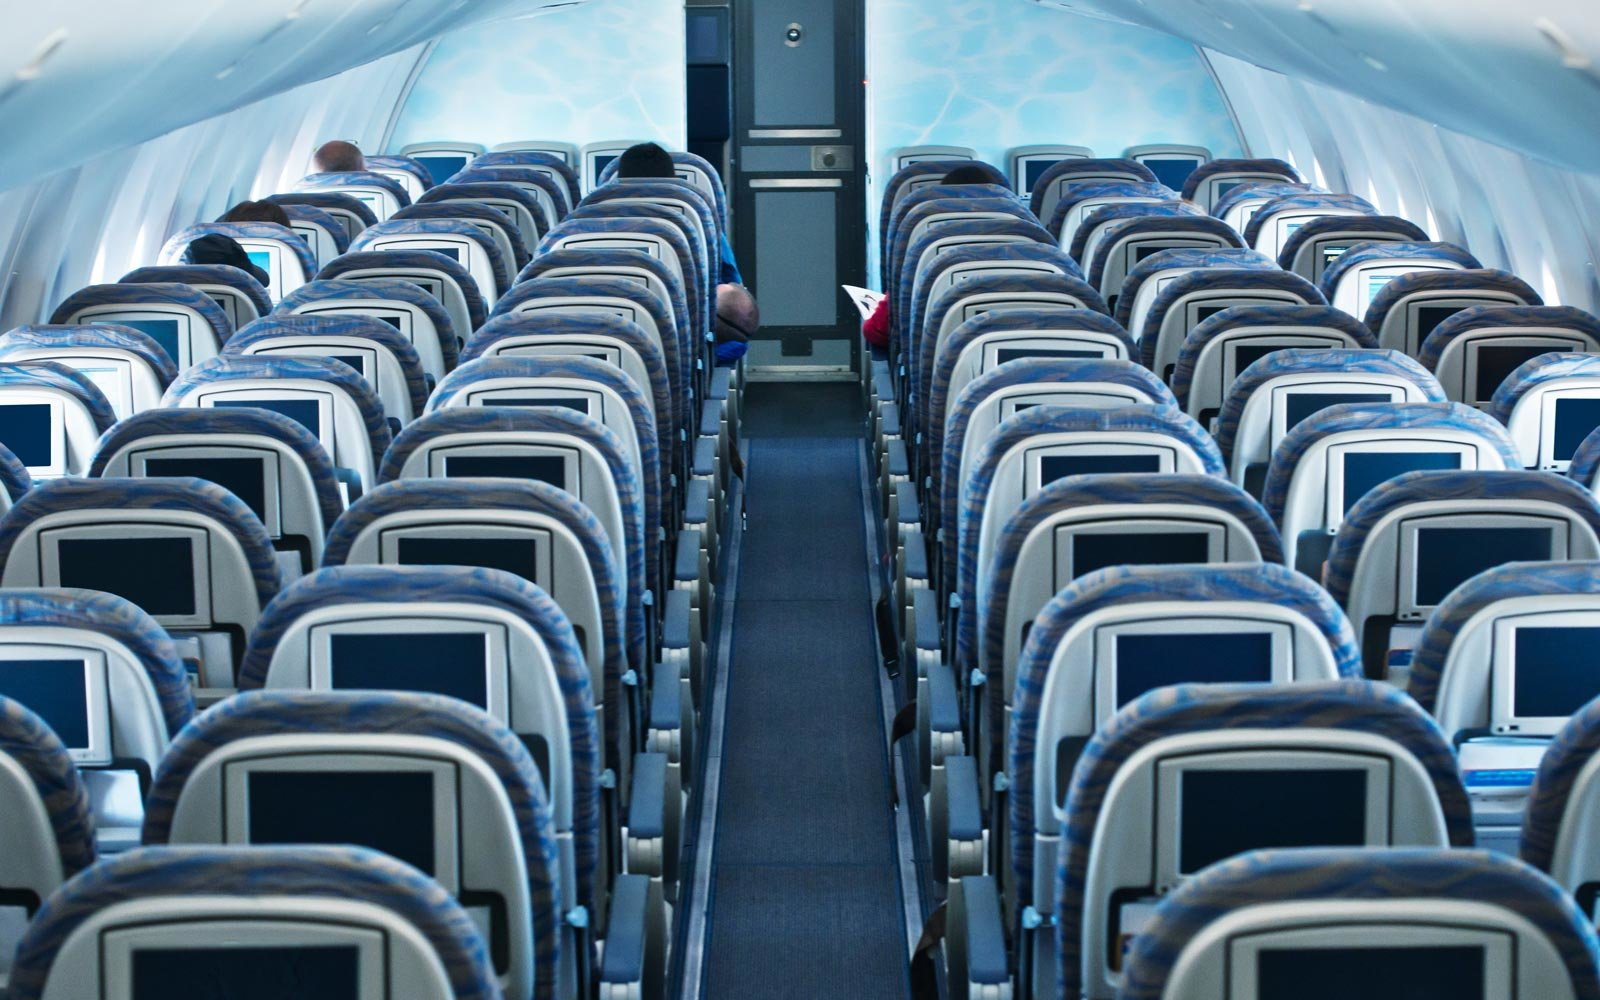 Engineer Designs Better Economy Seats